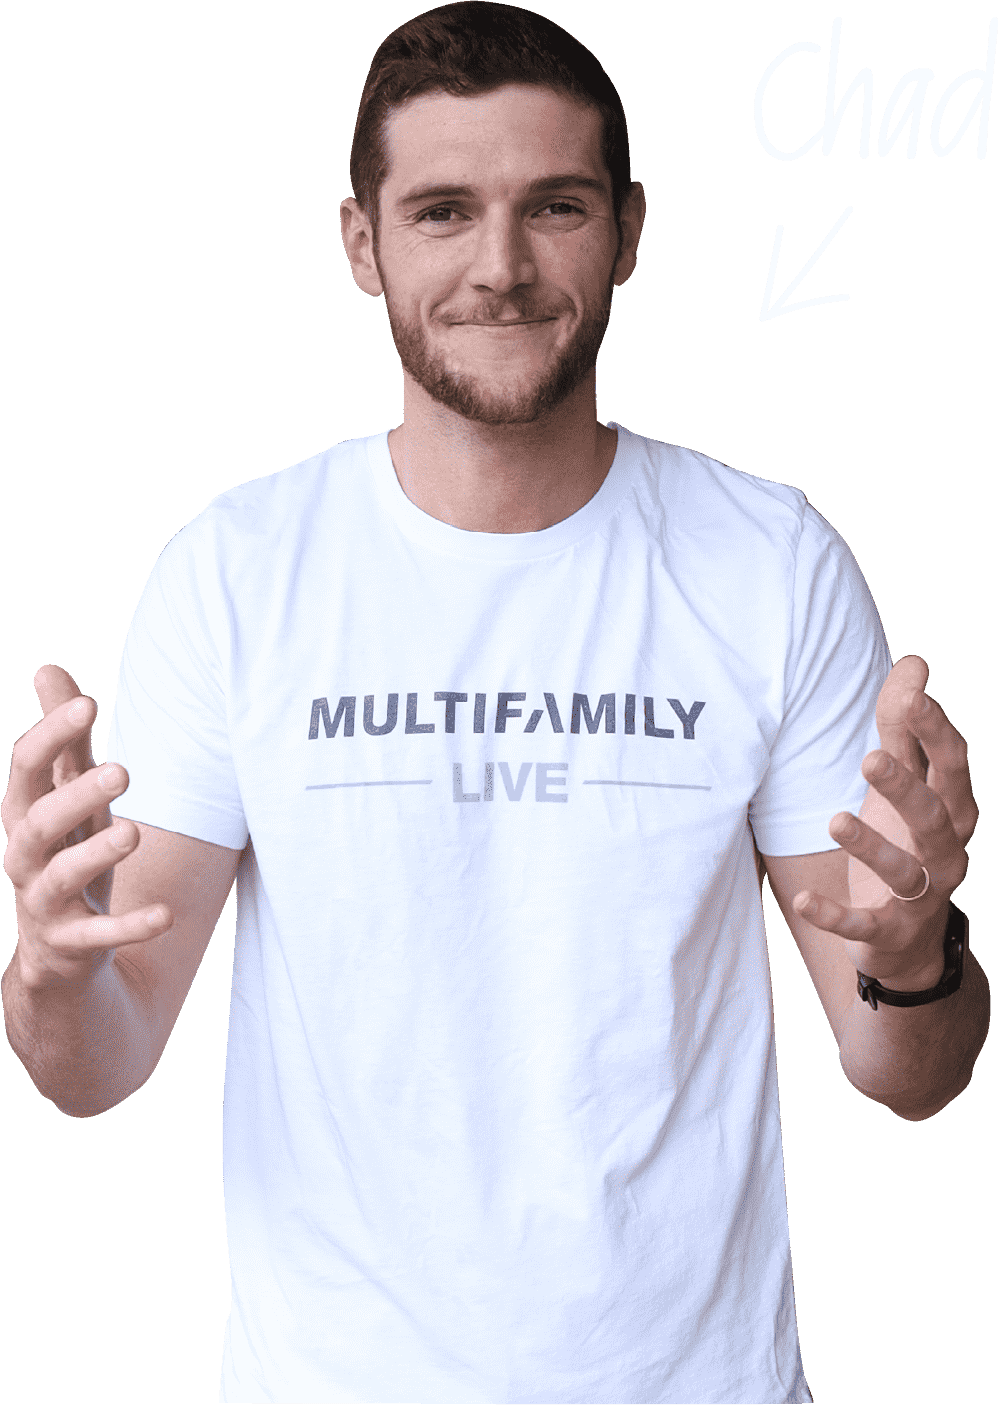 Chad King MultiFamily Investing